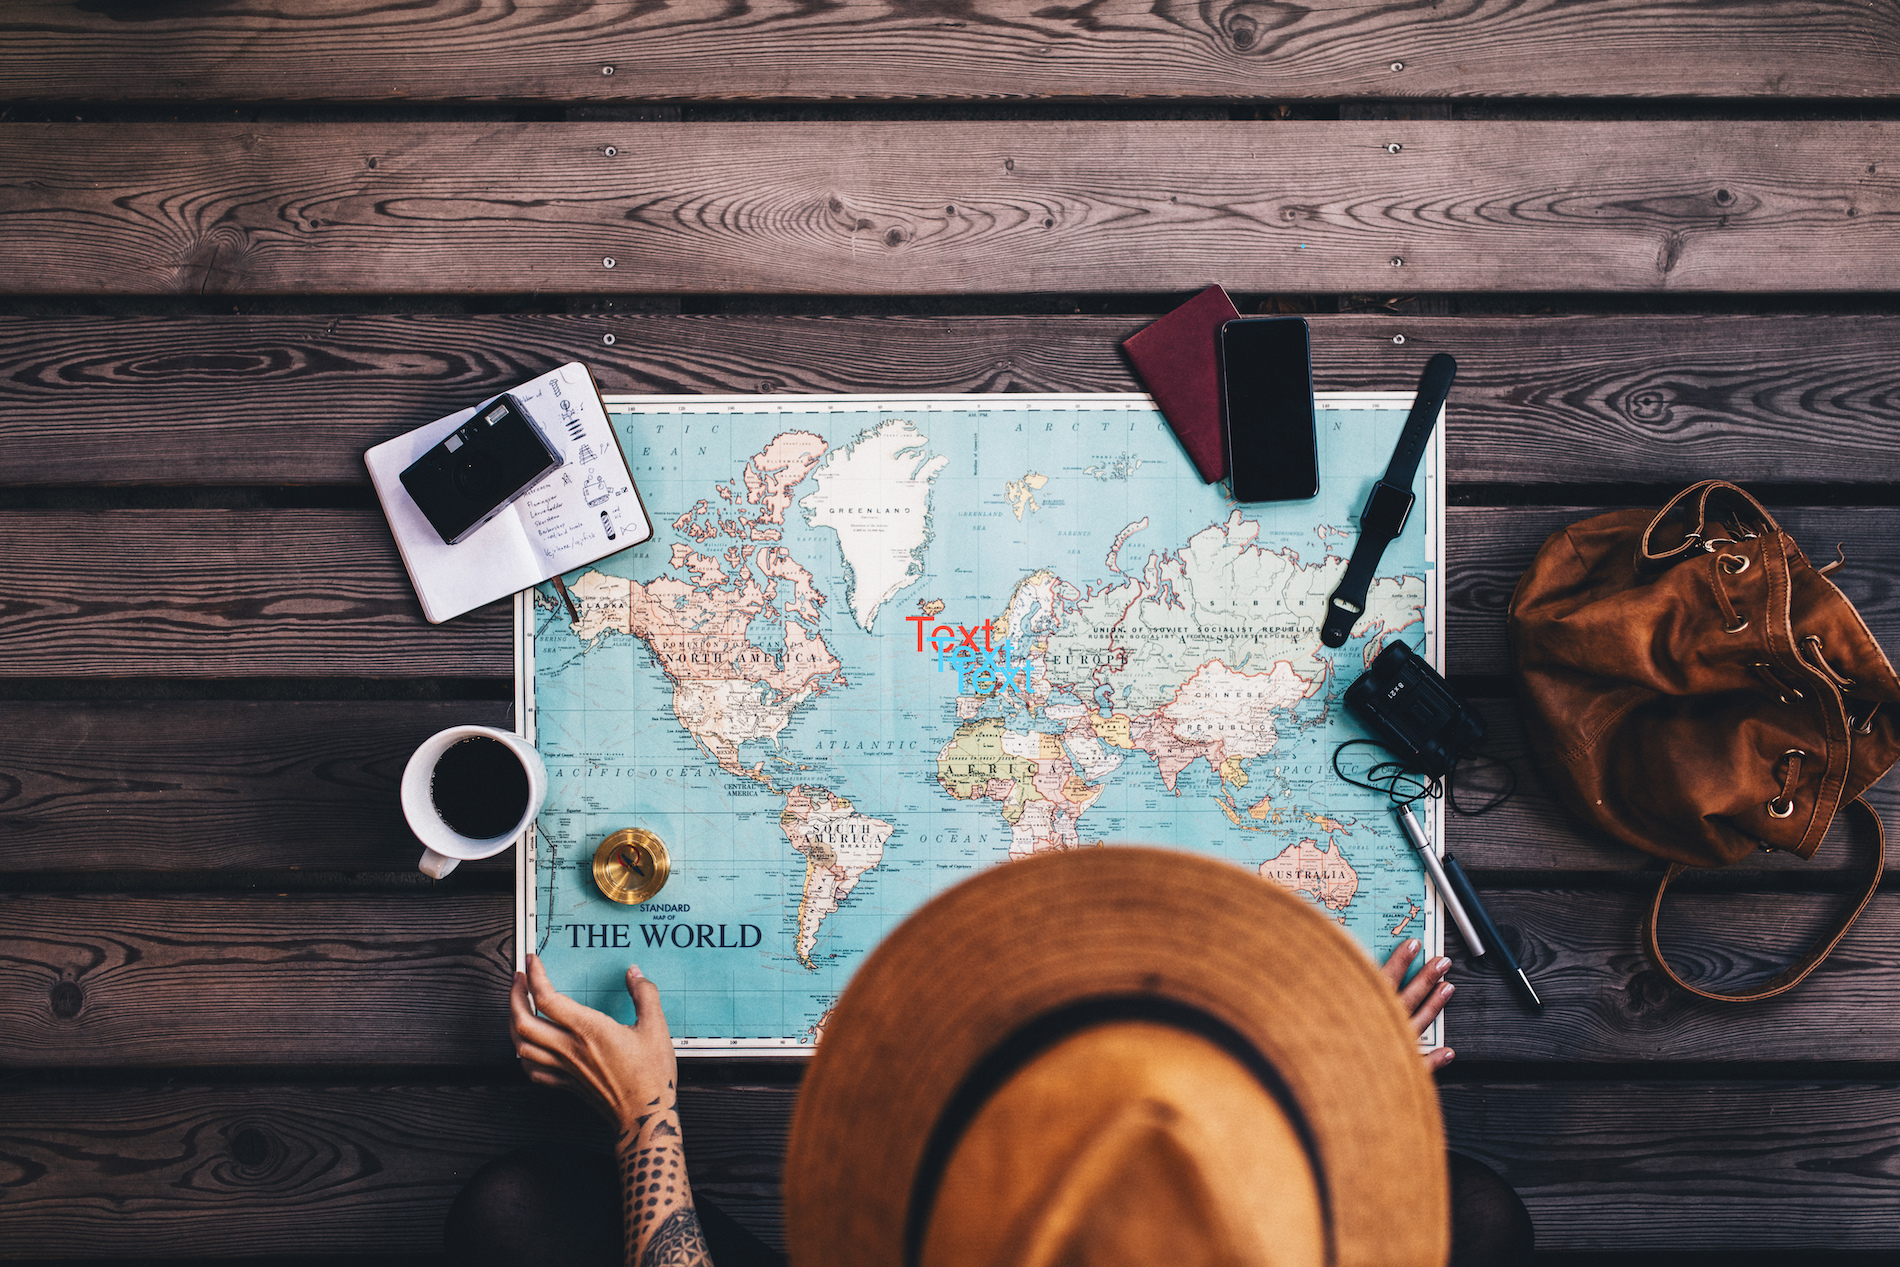 My Dream of Travel Started With Doing the Work